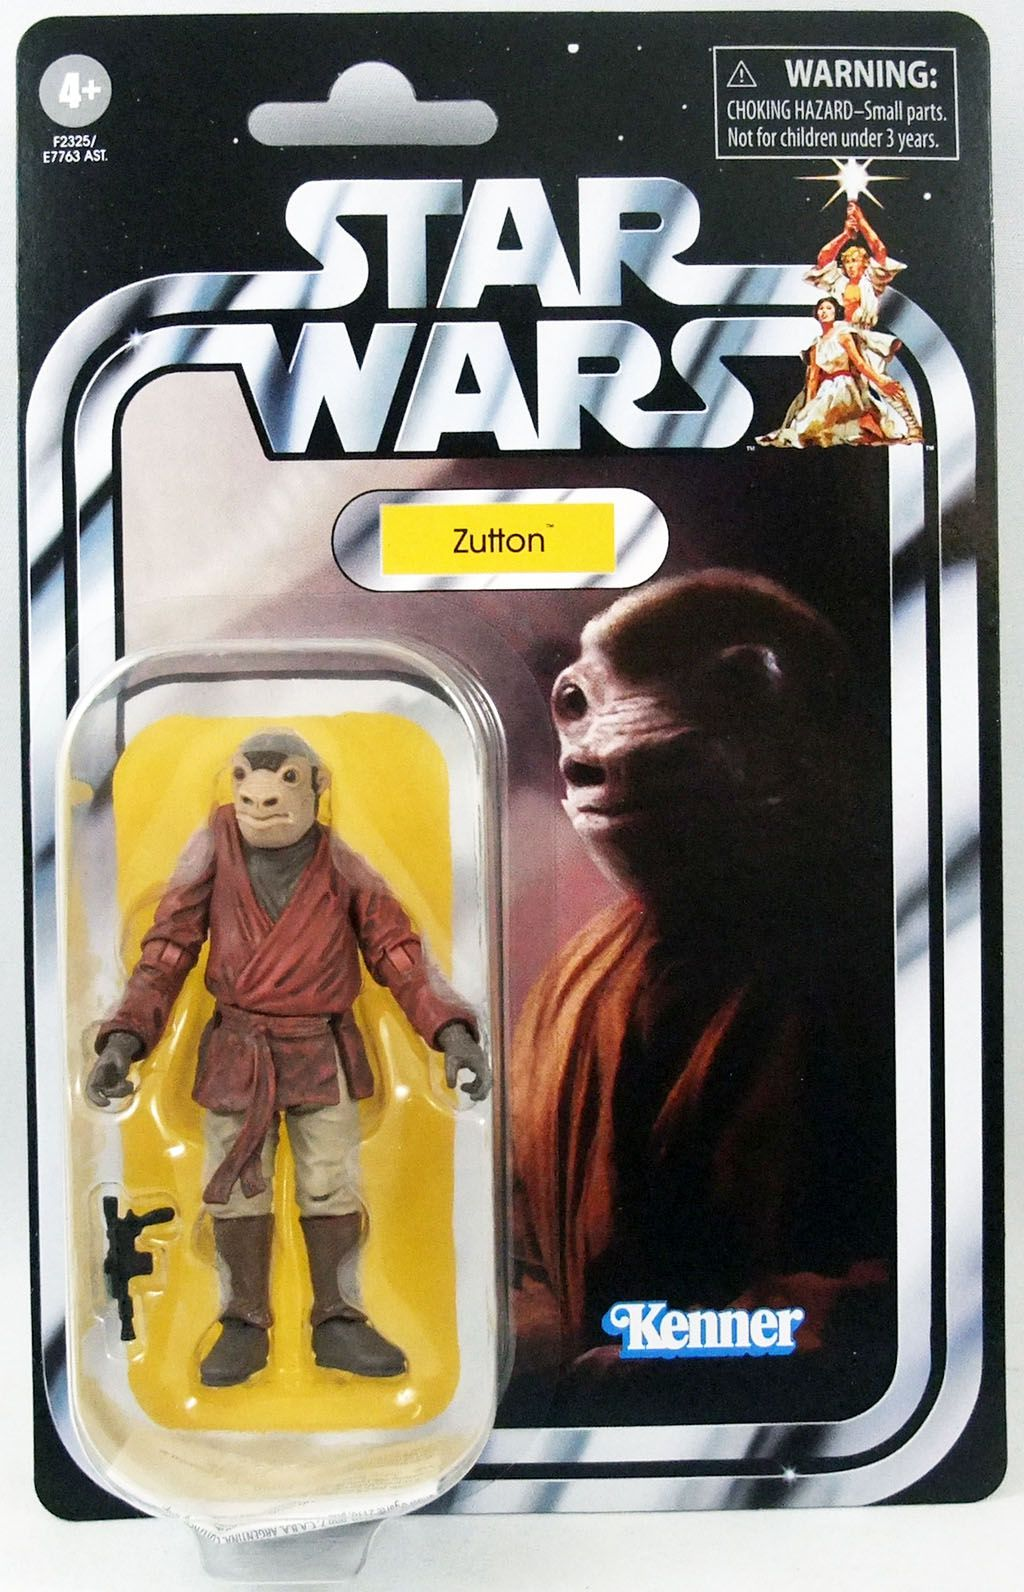 Star Wars (The Vintage Collection) - Hasbro - Zutton - A New Hope